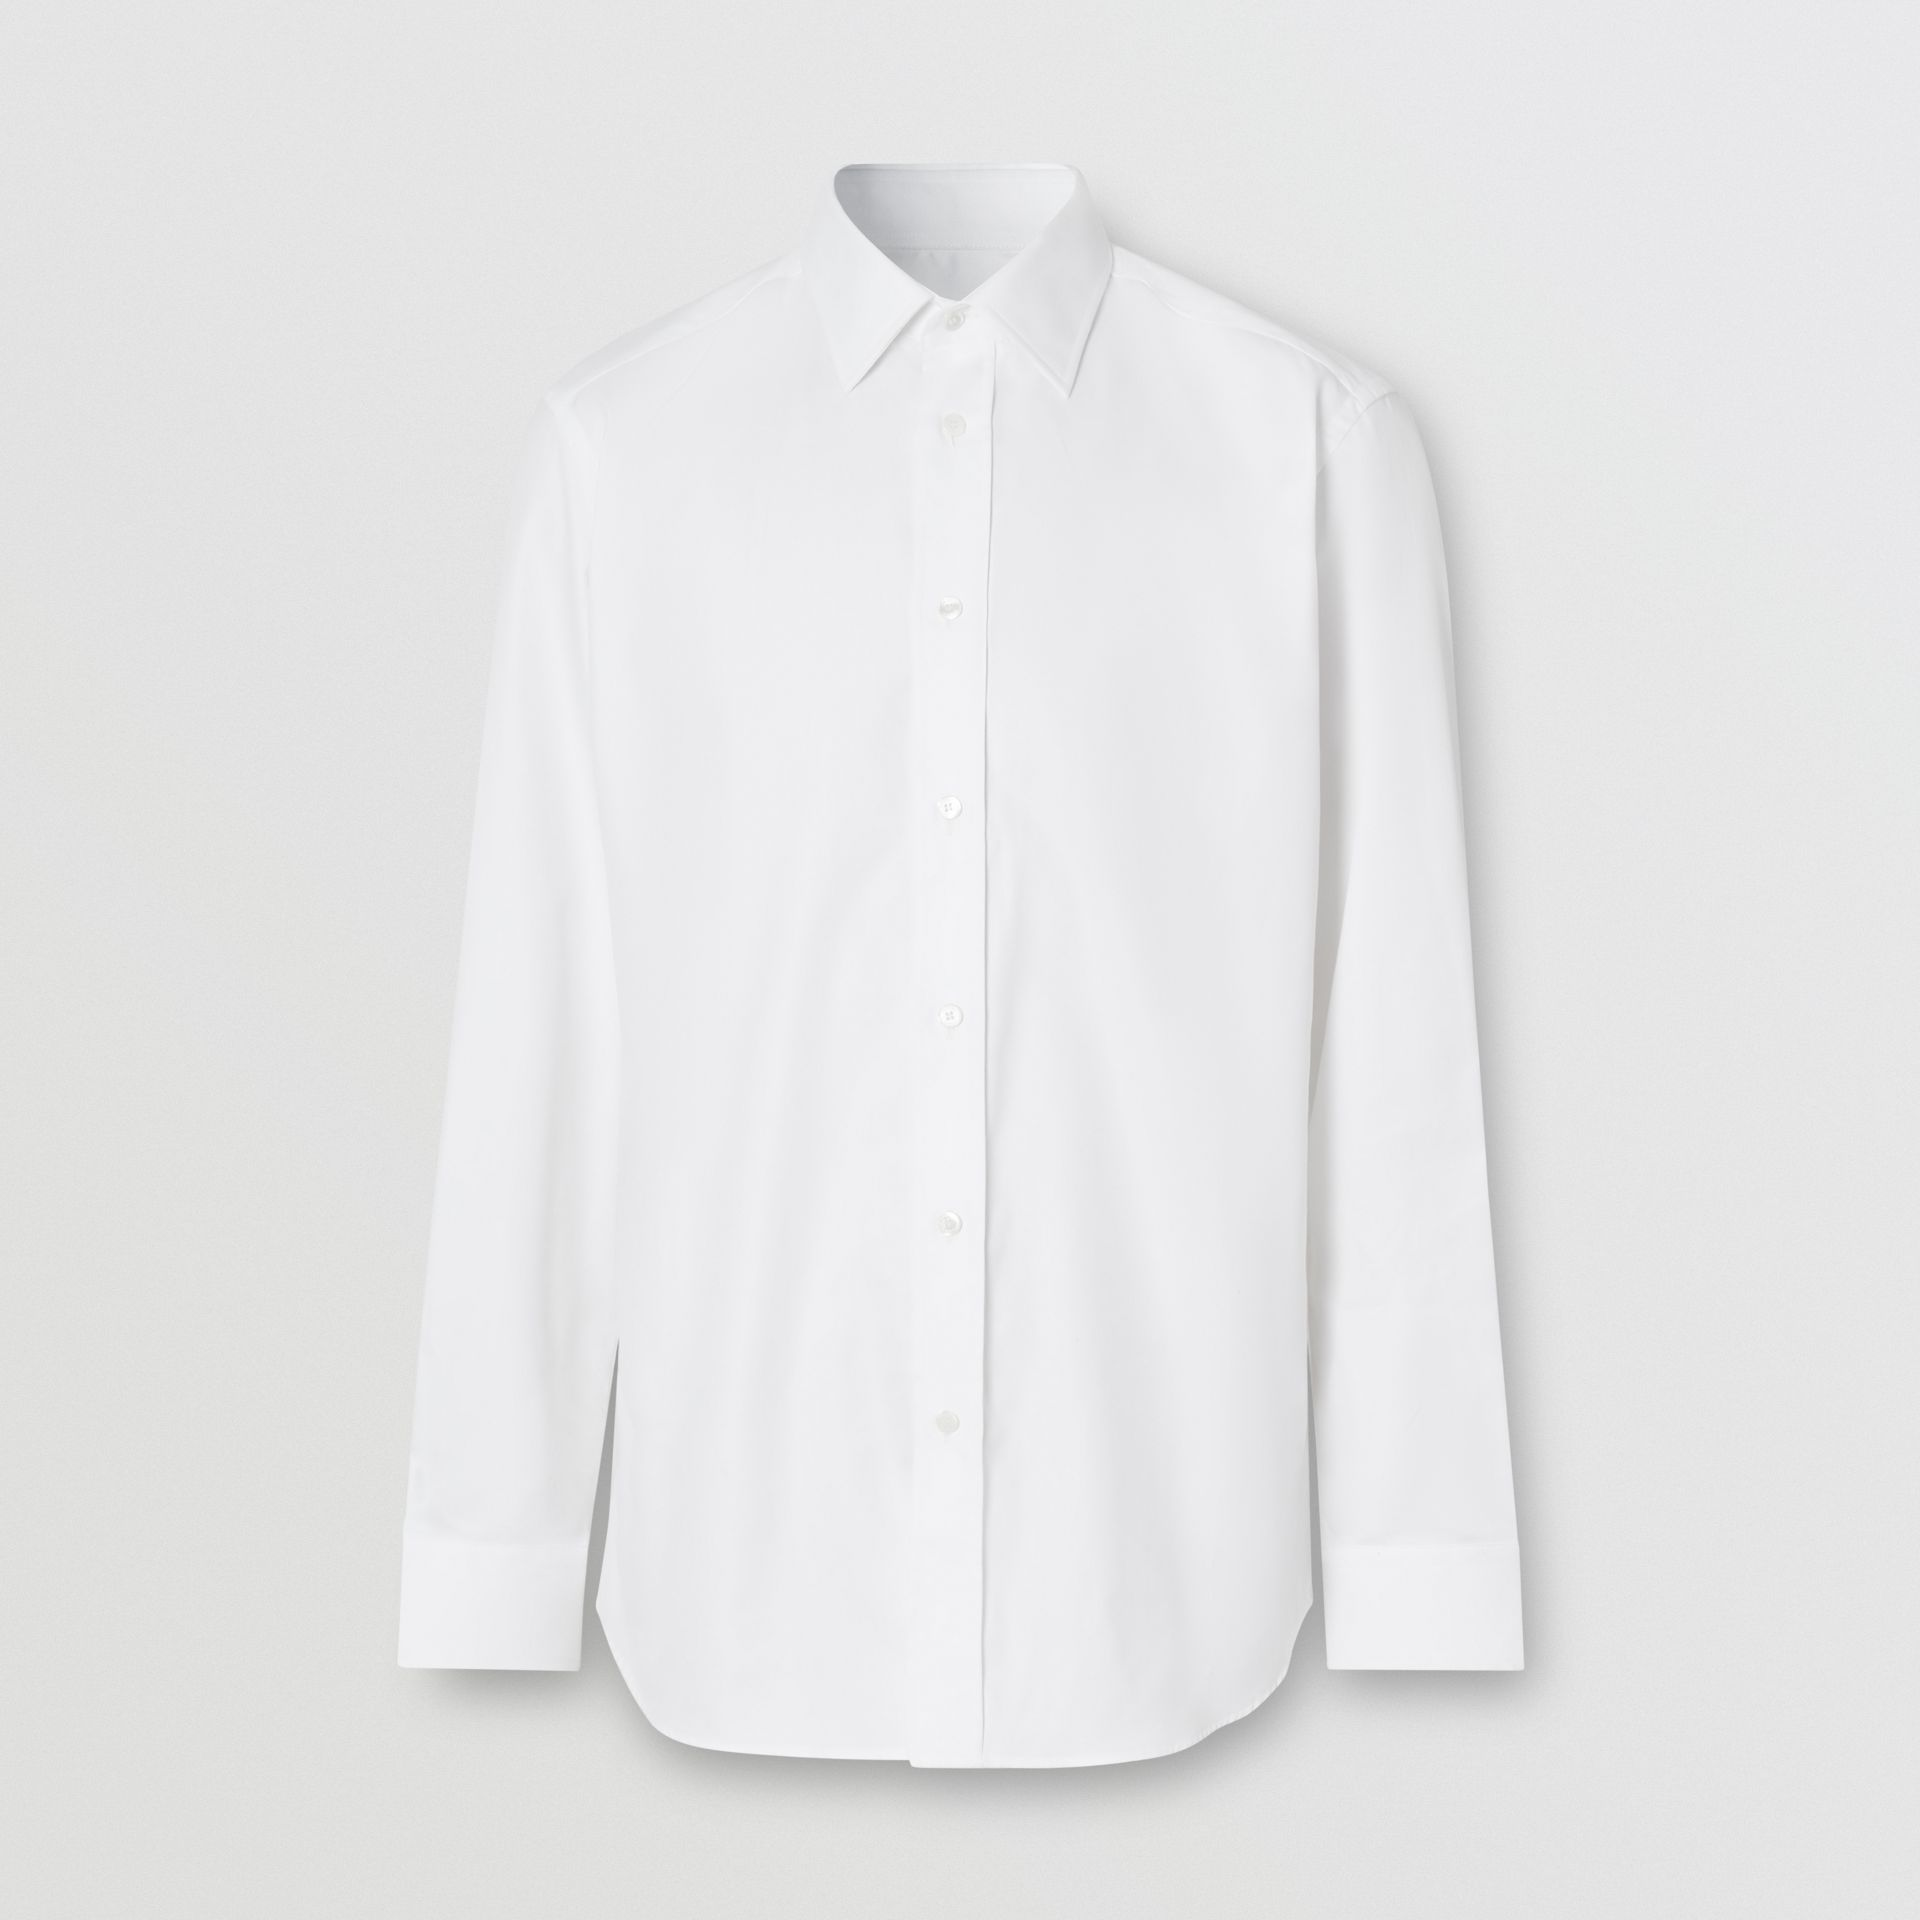 Classic Fit Monogram Motif Cotton Oxford Shirt in White - Men | Burberry Singapore - gallery image 3